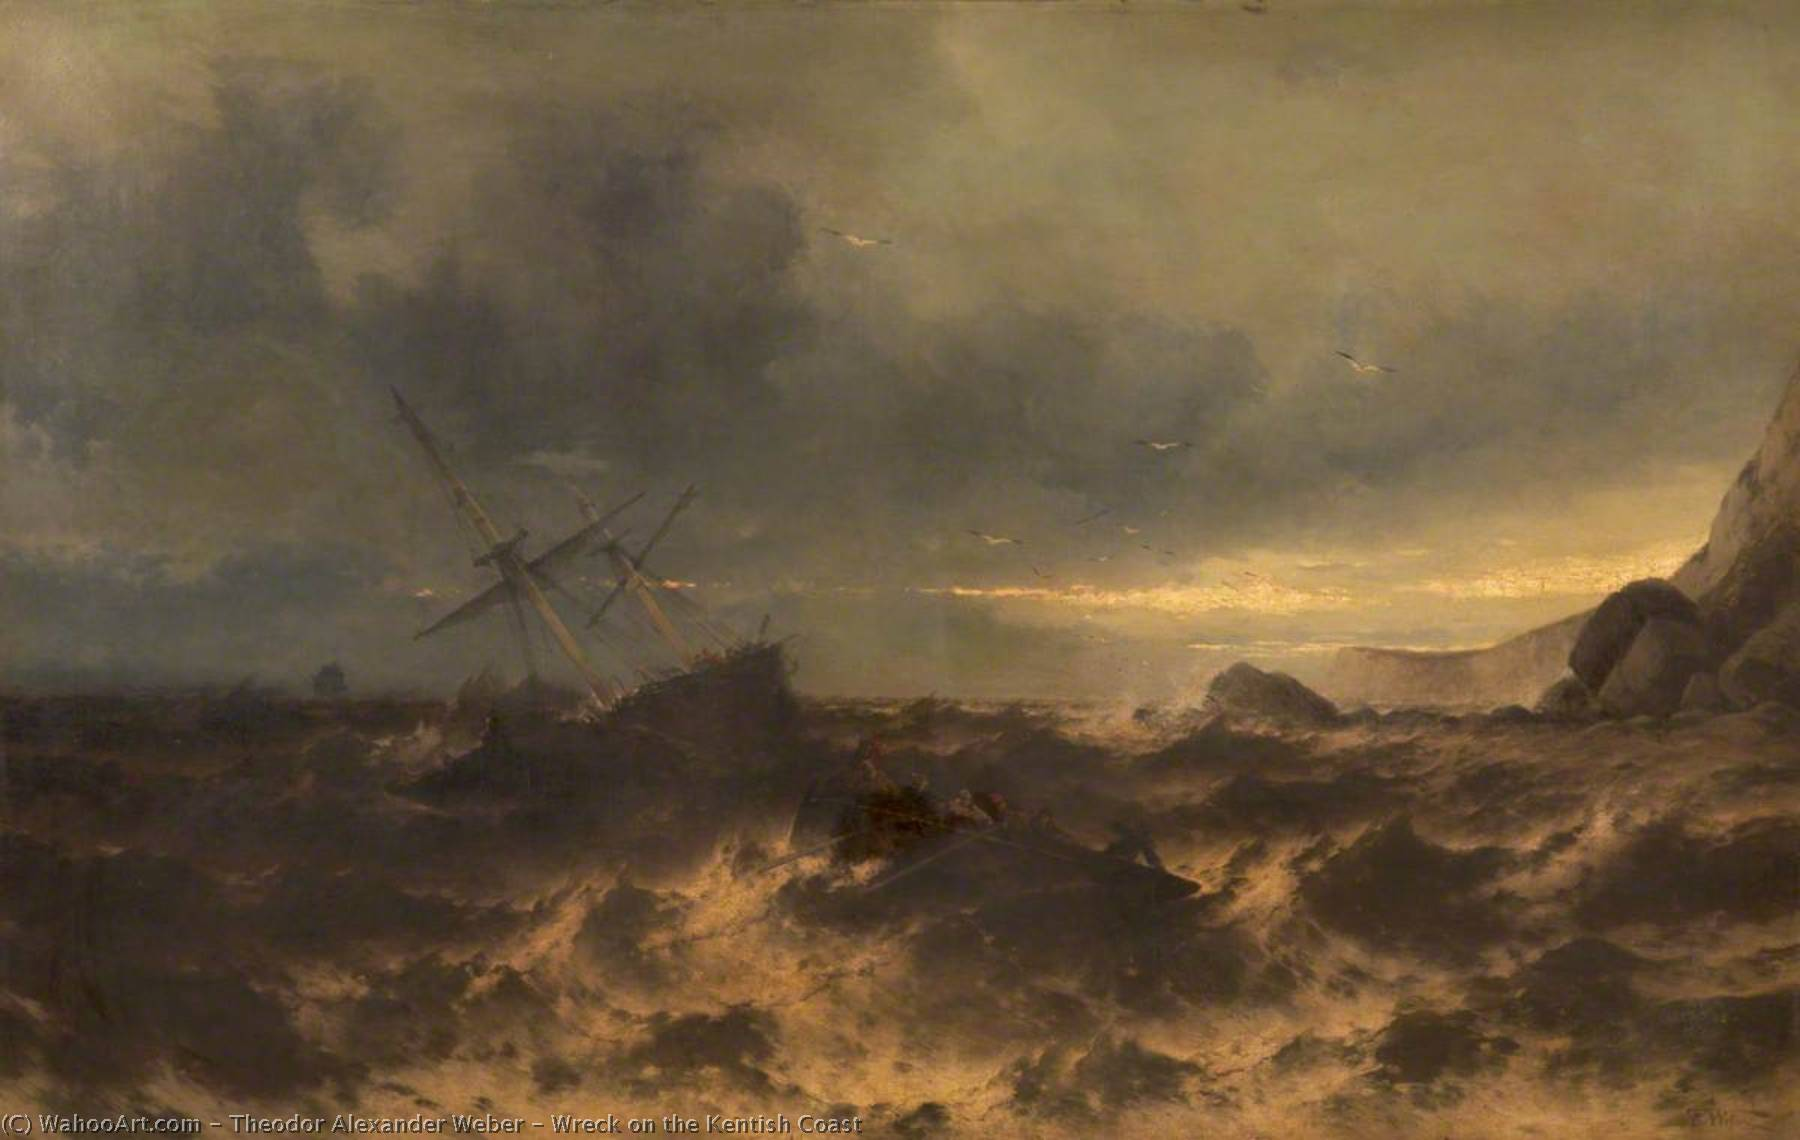 Wreck on the Kentish Coast, Oil On Canvas by Theodor Alexander Weber (1838-1907)